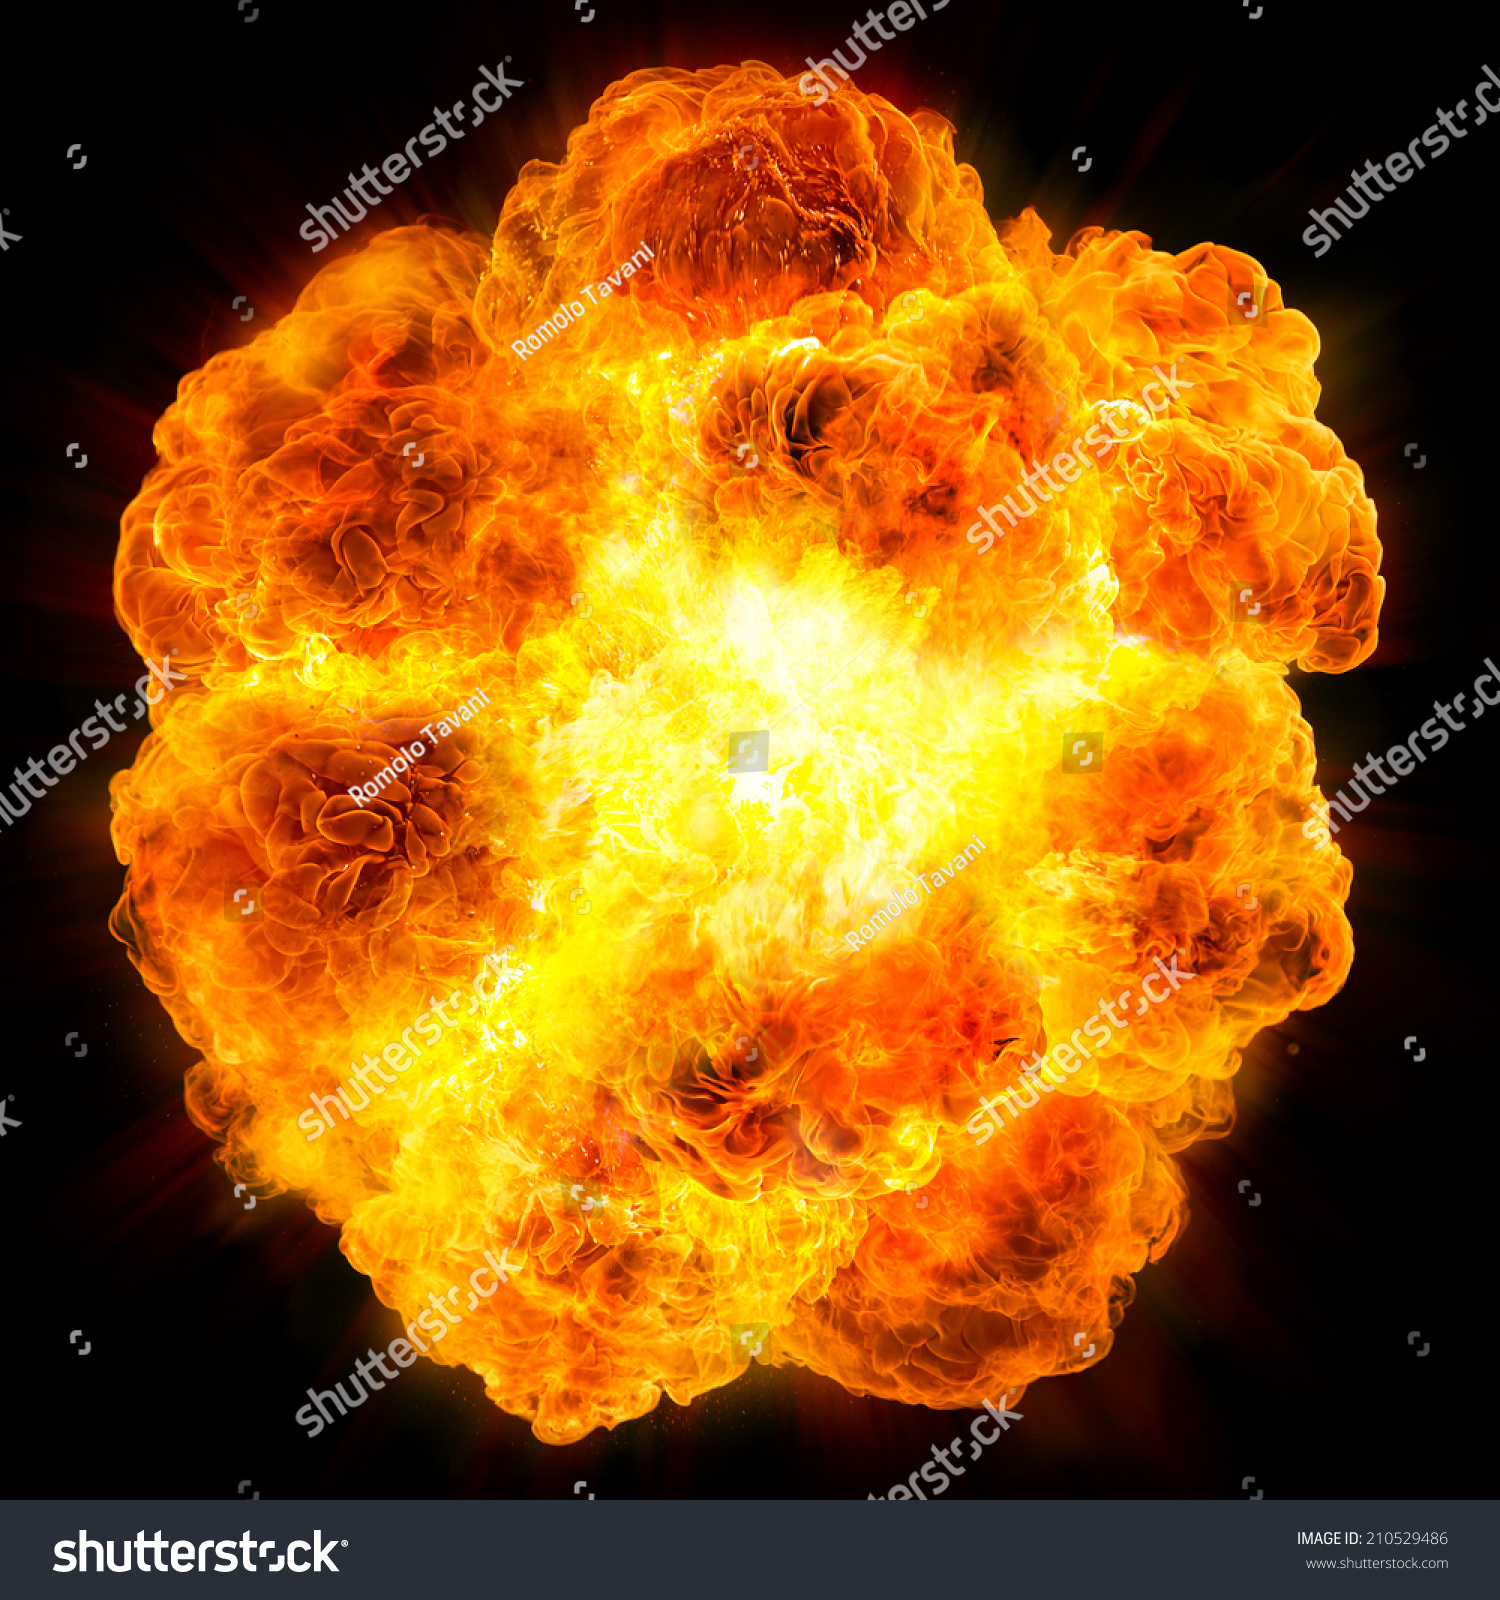 fireball  explosion stock photo 210529486   shutterstock